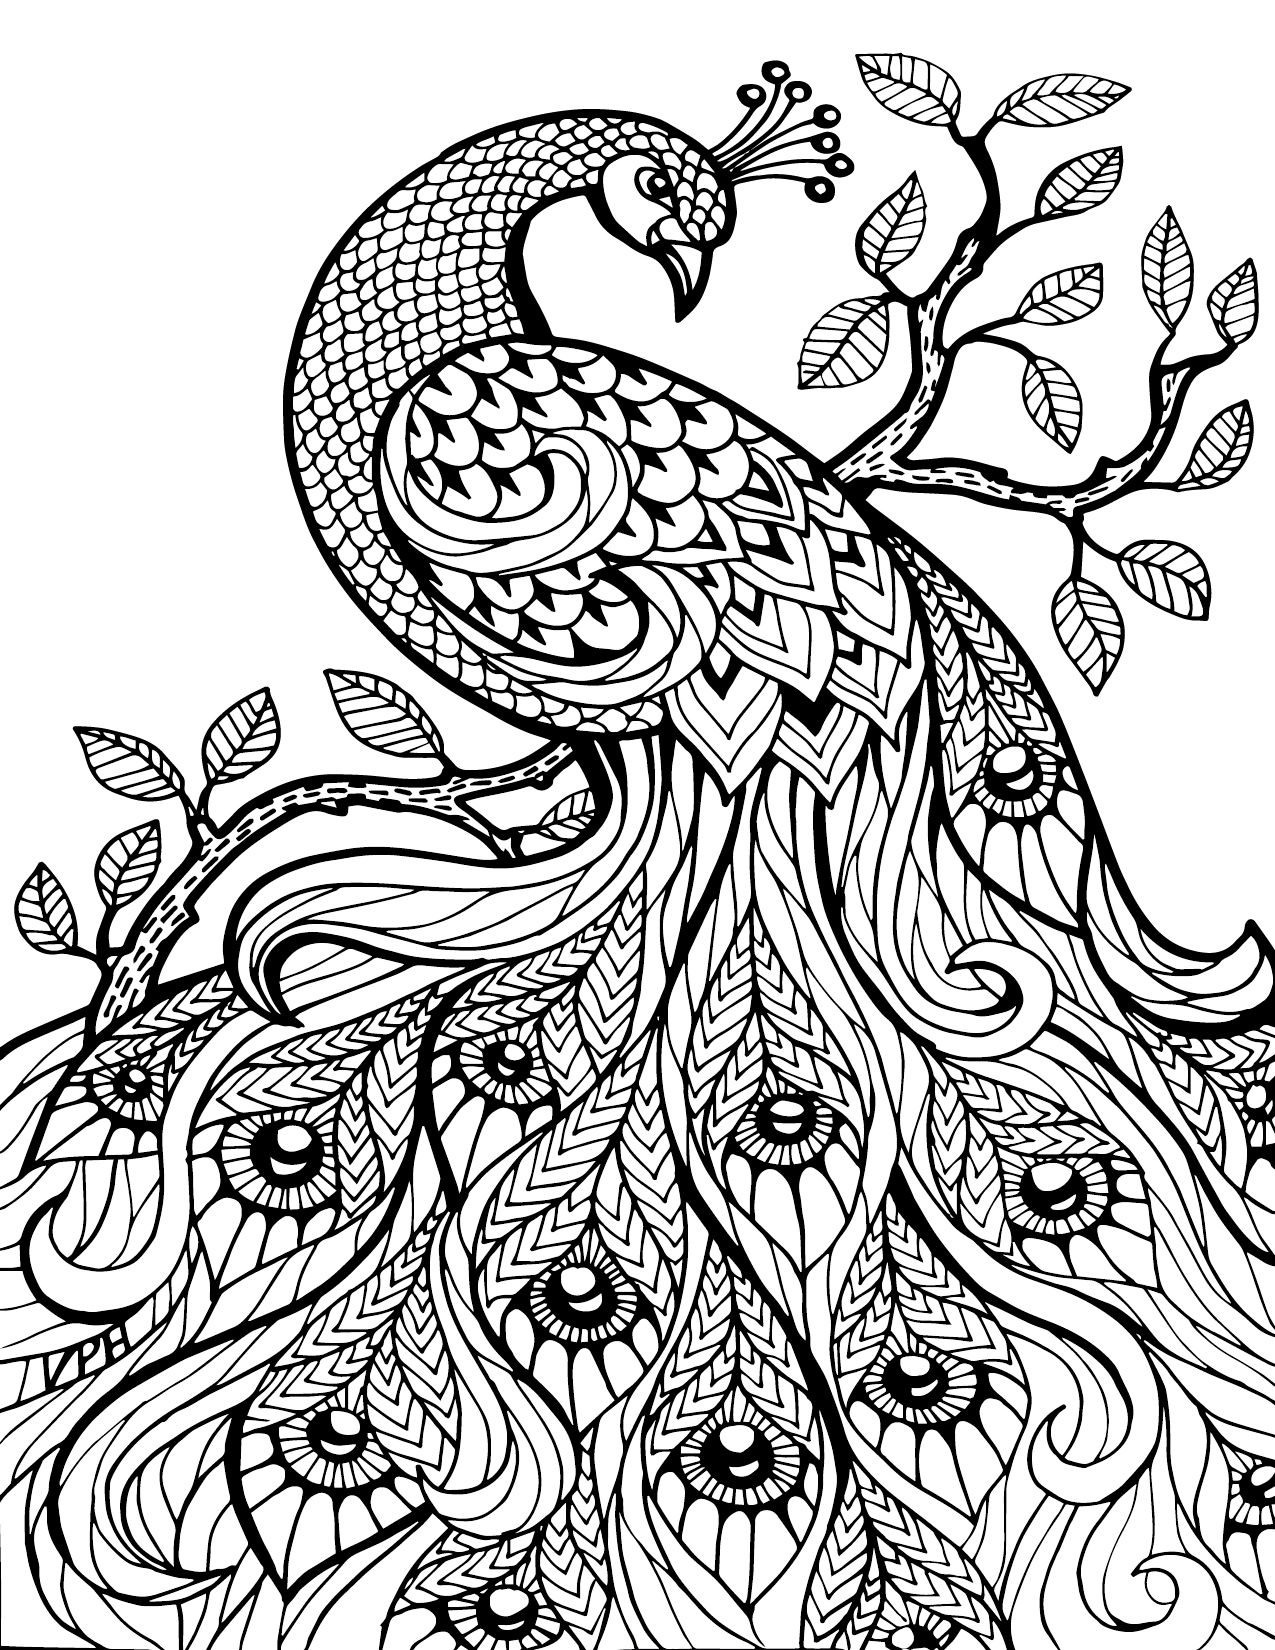 Animal Mandala Coloring Pages Printable